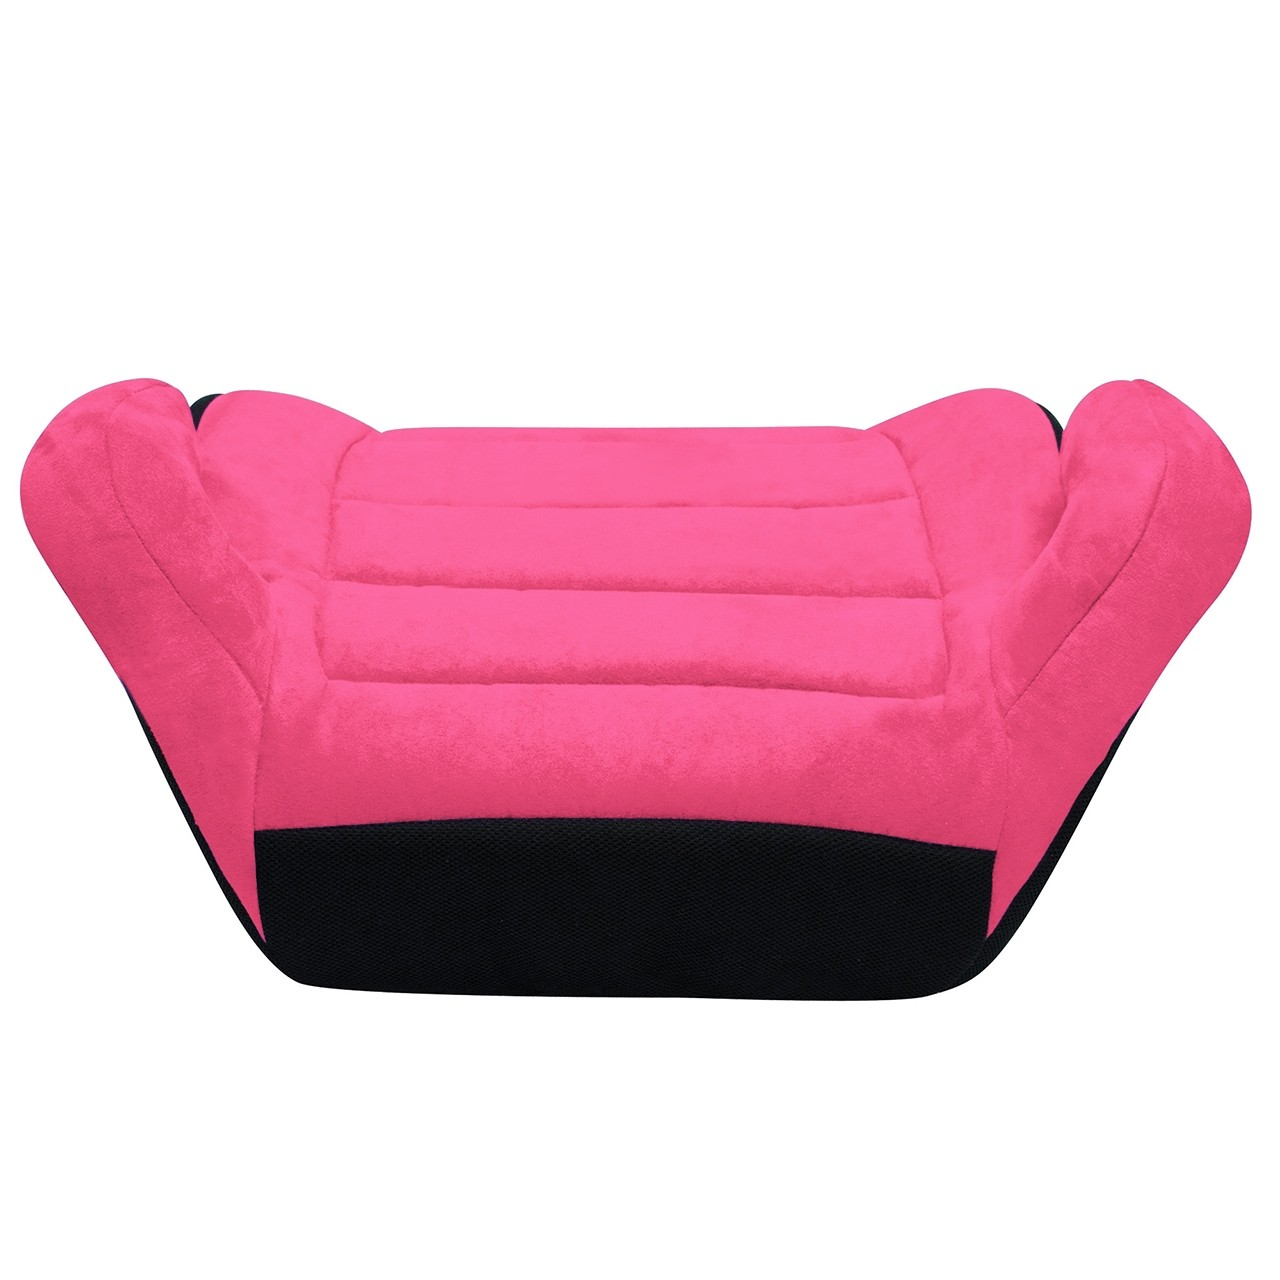 Youth Booster Car Seat - Bubblegum